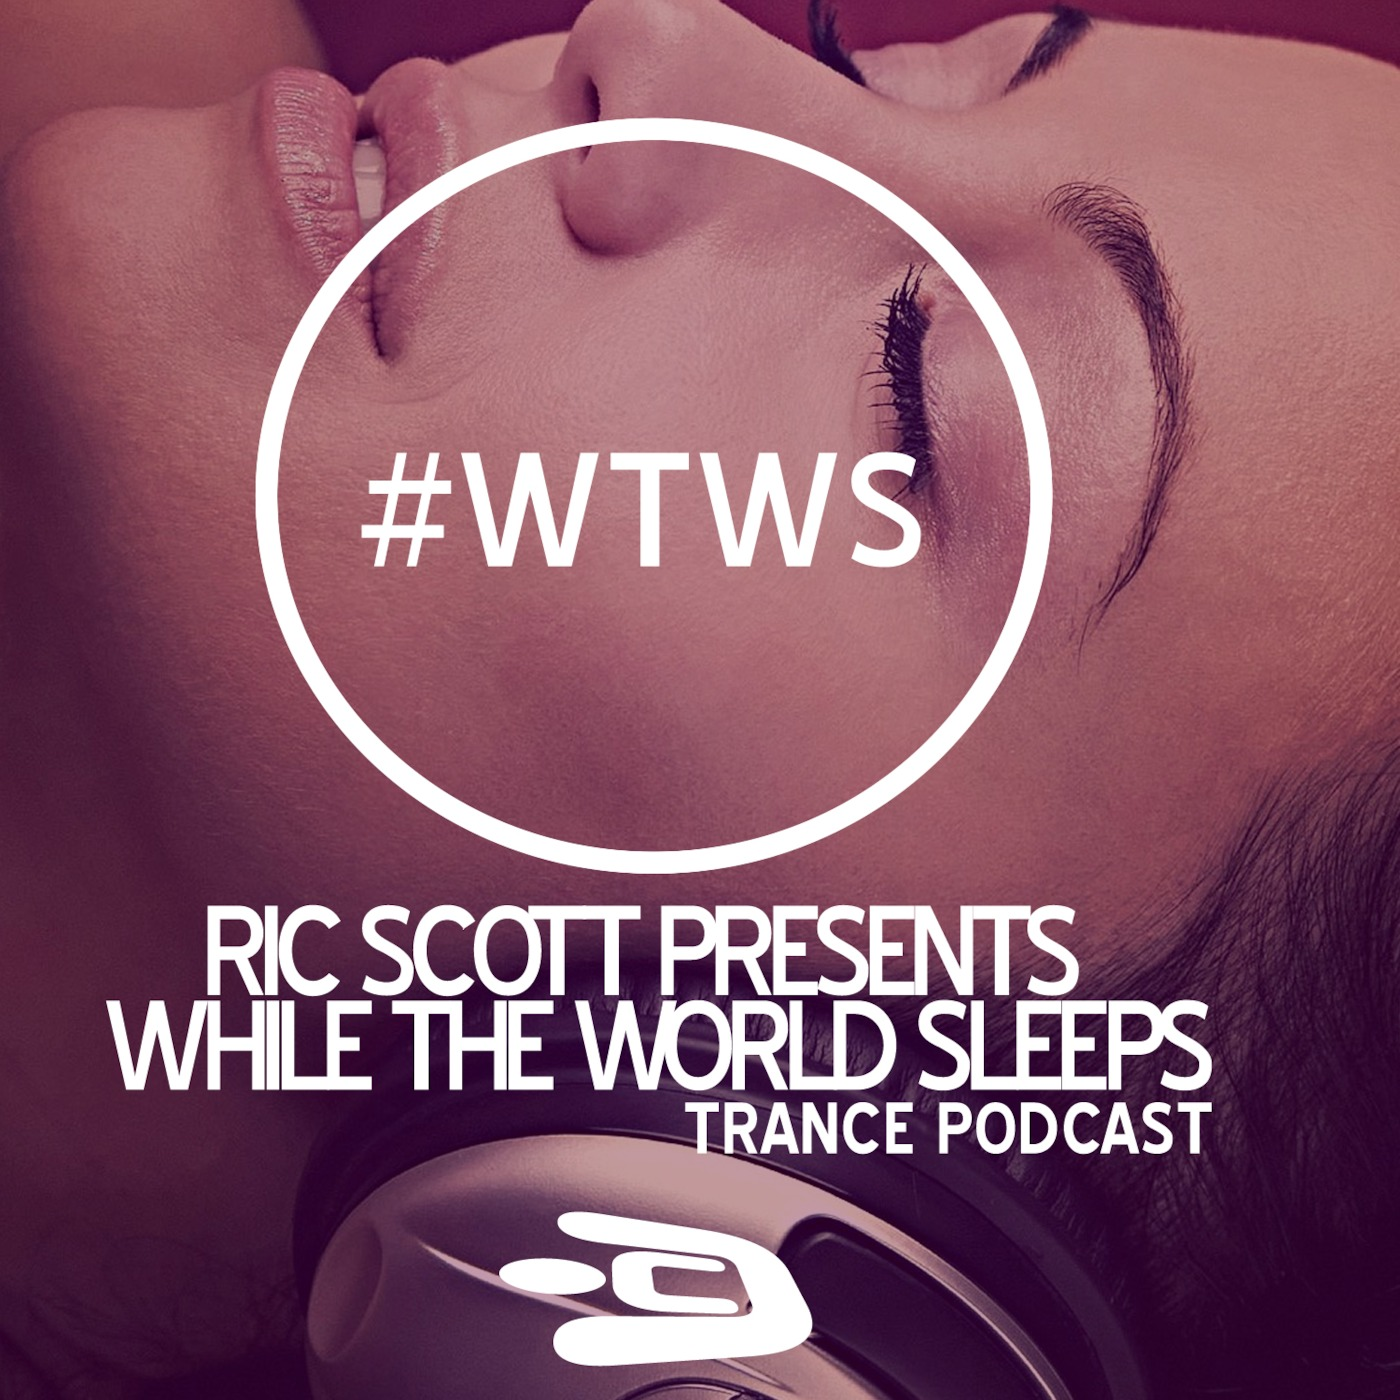 Ric Scott Presents: While The World Sleeps